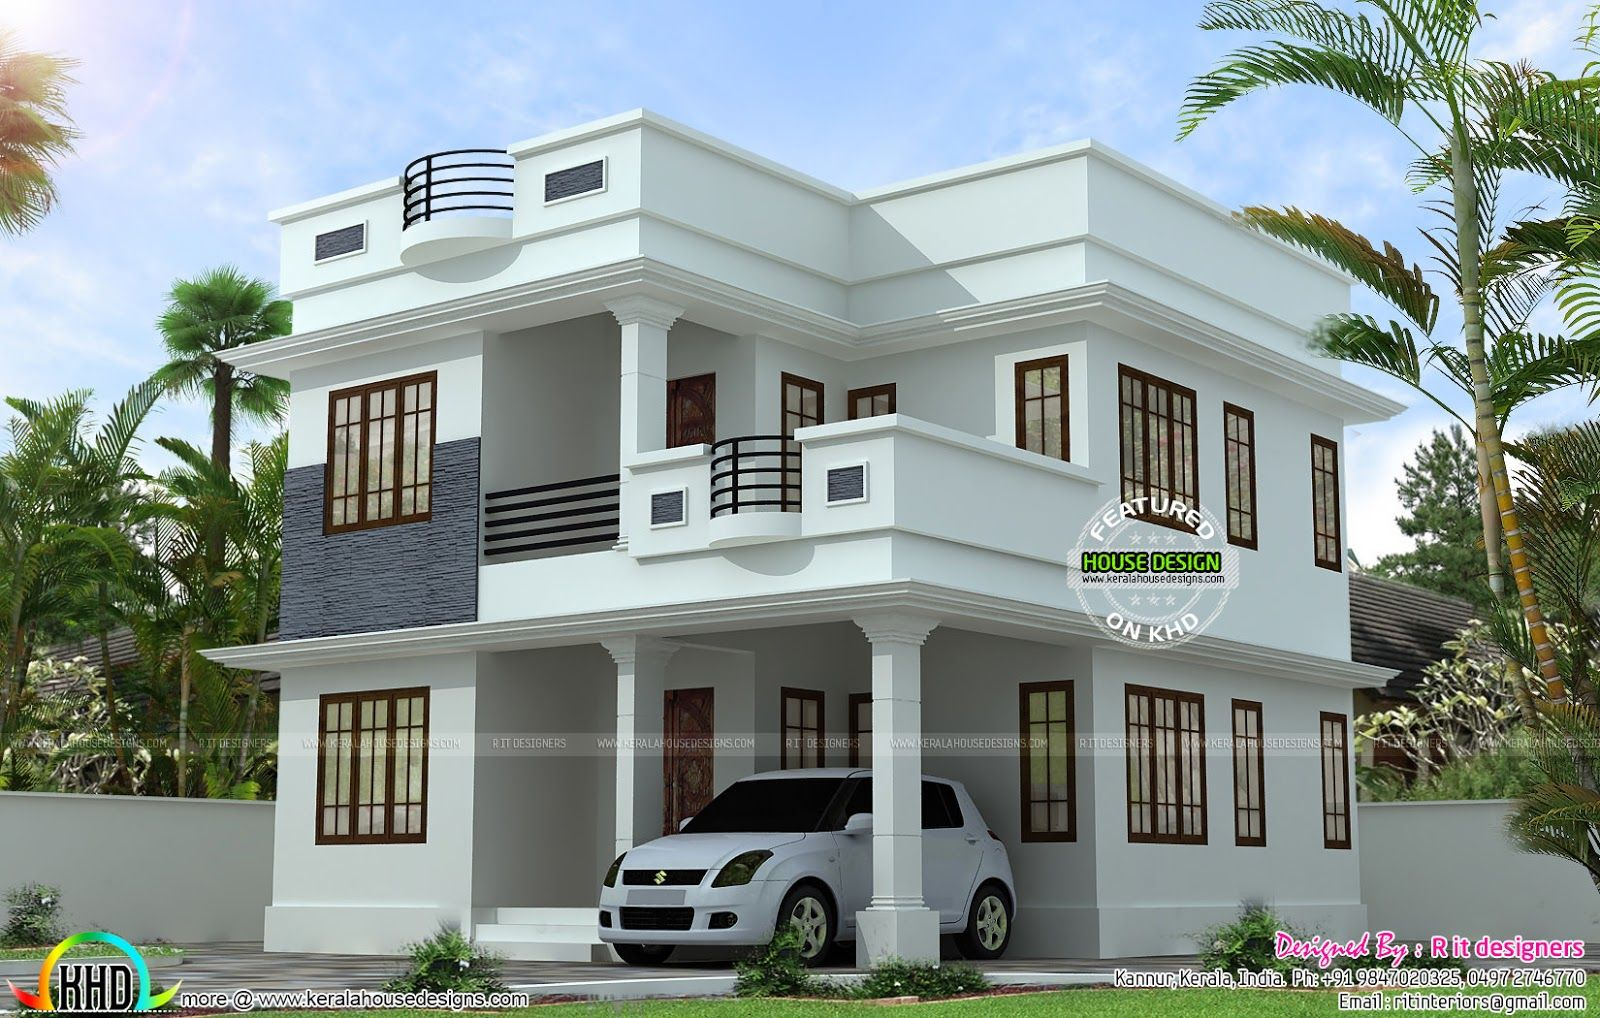 House Desings Brilliant Picture Gallery Of Kerala Houses  House Plans And Ideas Inspiration Design